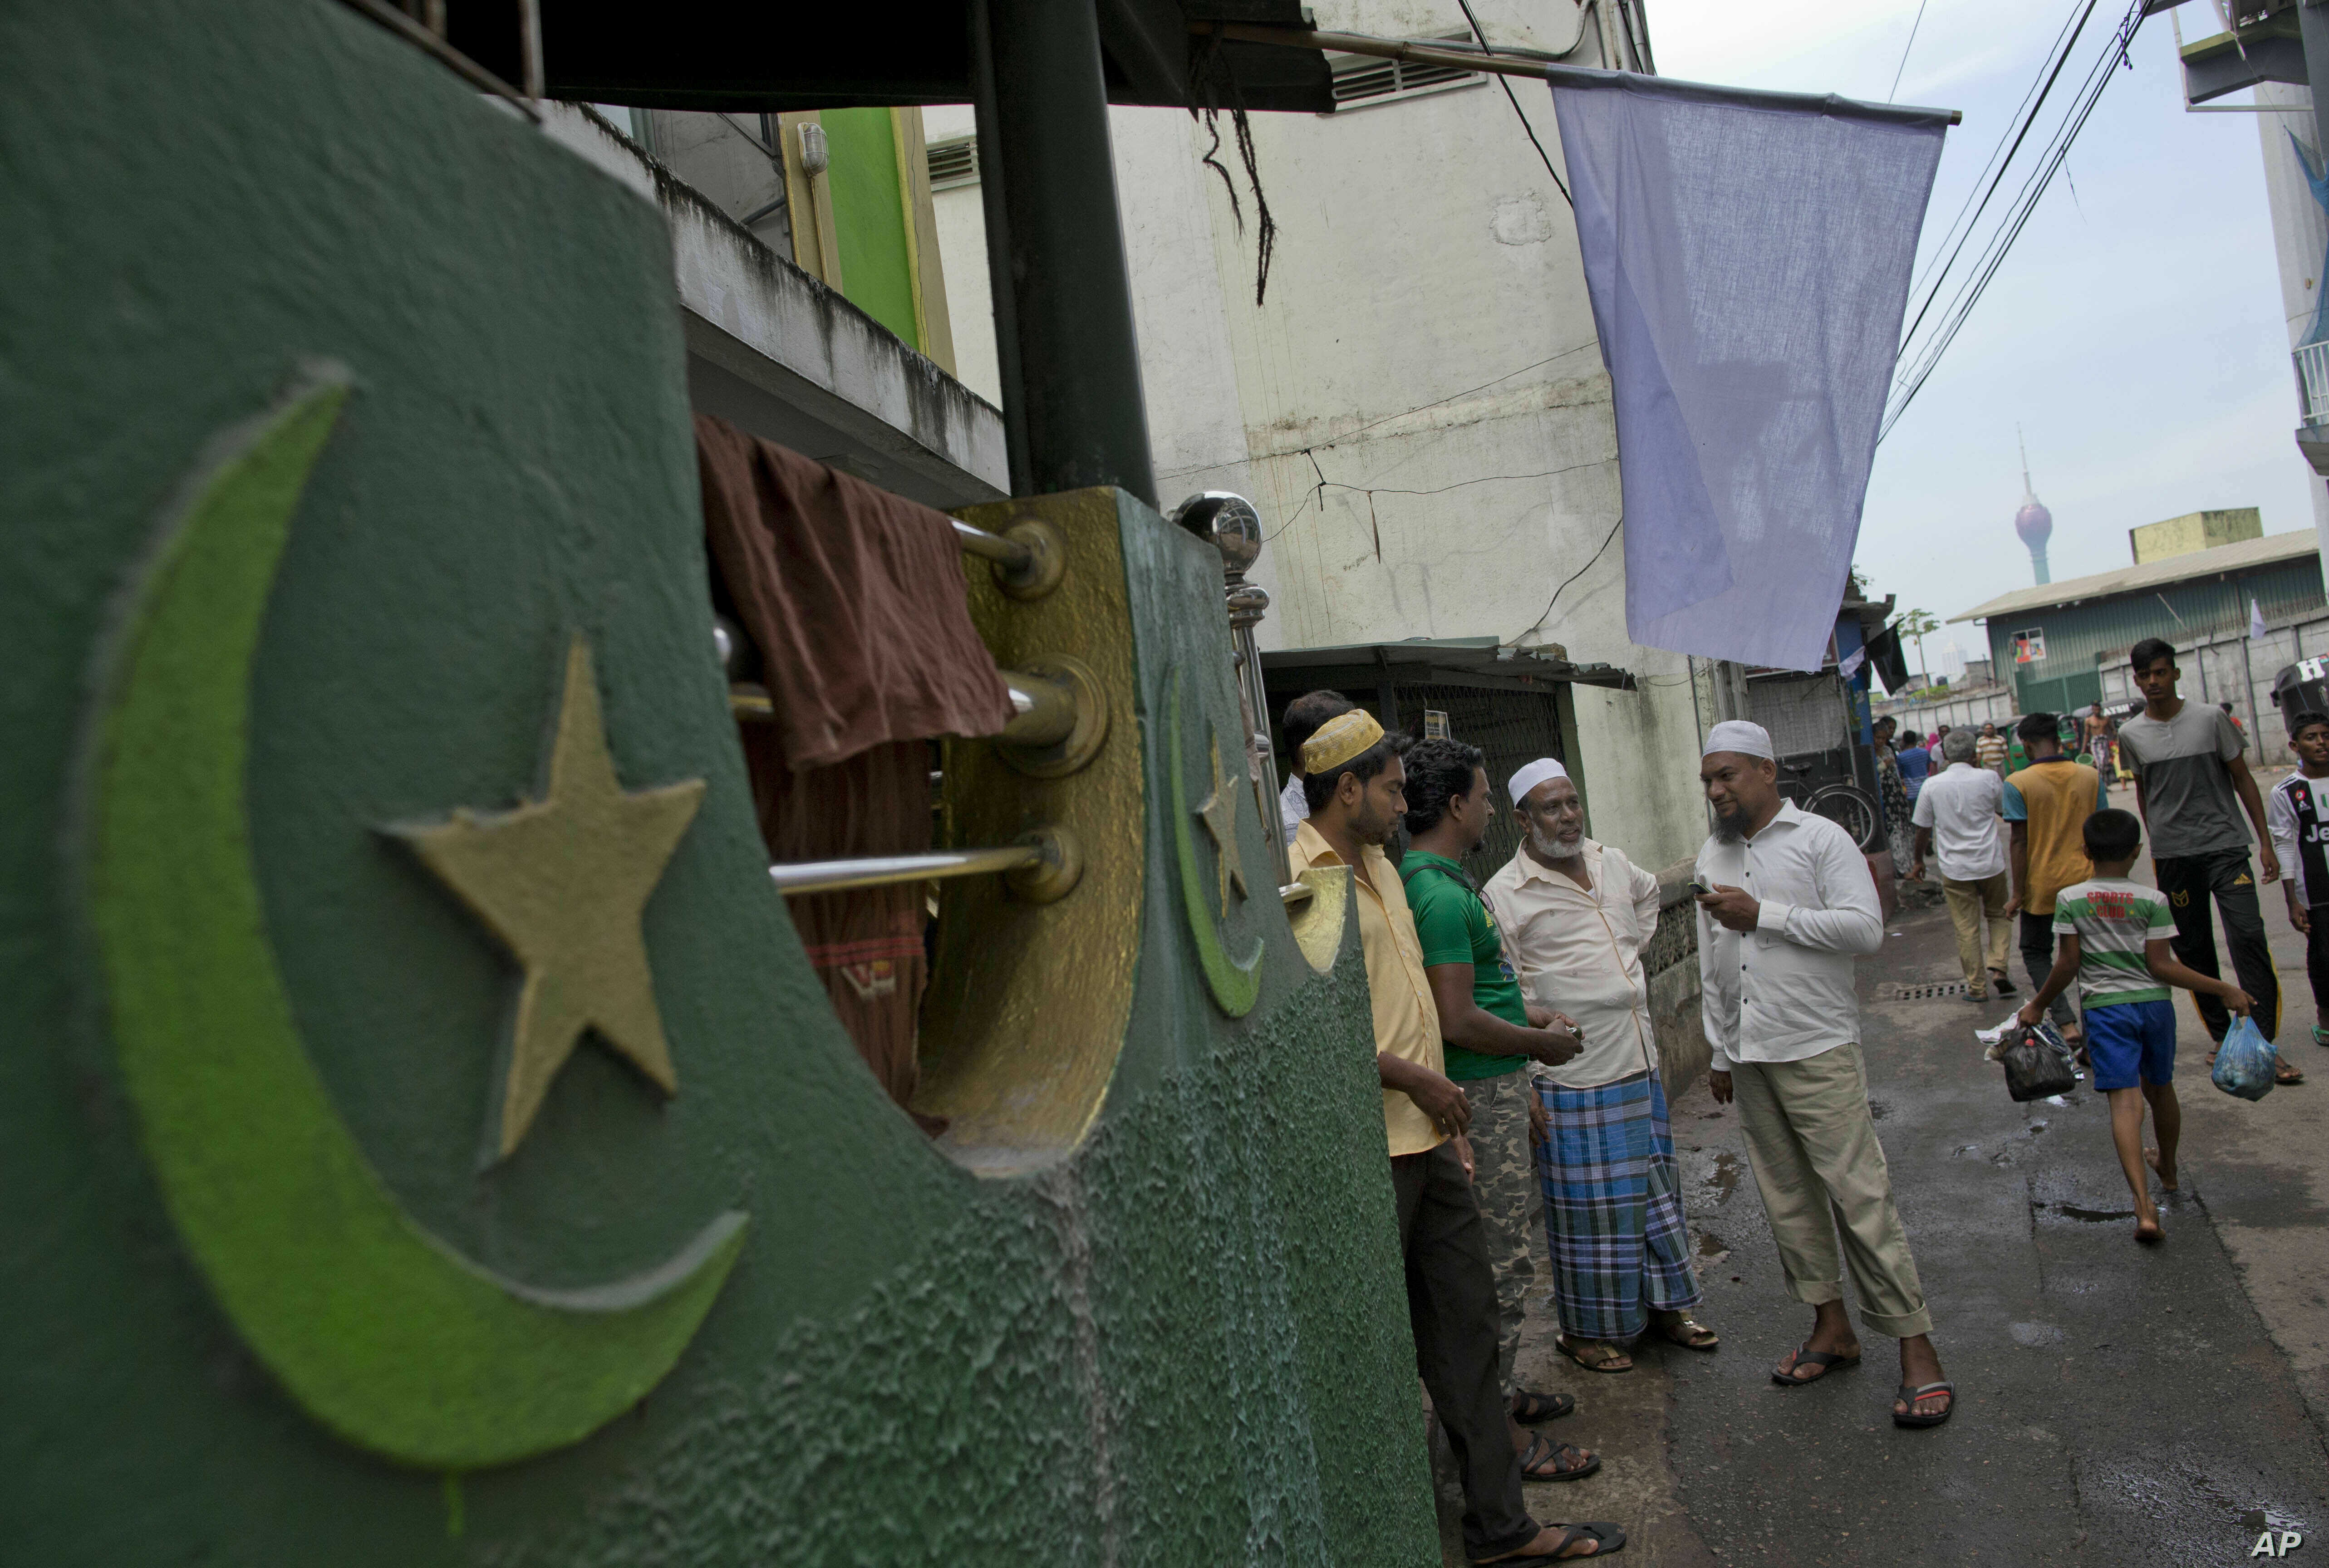 Muslim men gather outside a mosque in Colombo, Sri Lanka, April 26, 2019. Sri Lanka's president has appealed to the island nation not to view its minority Muslim community as terrorists in the wake of Easter attacks that officials say were carried ...